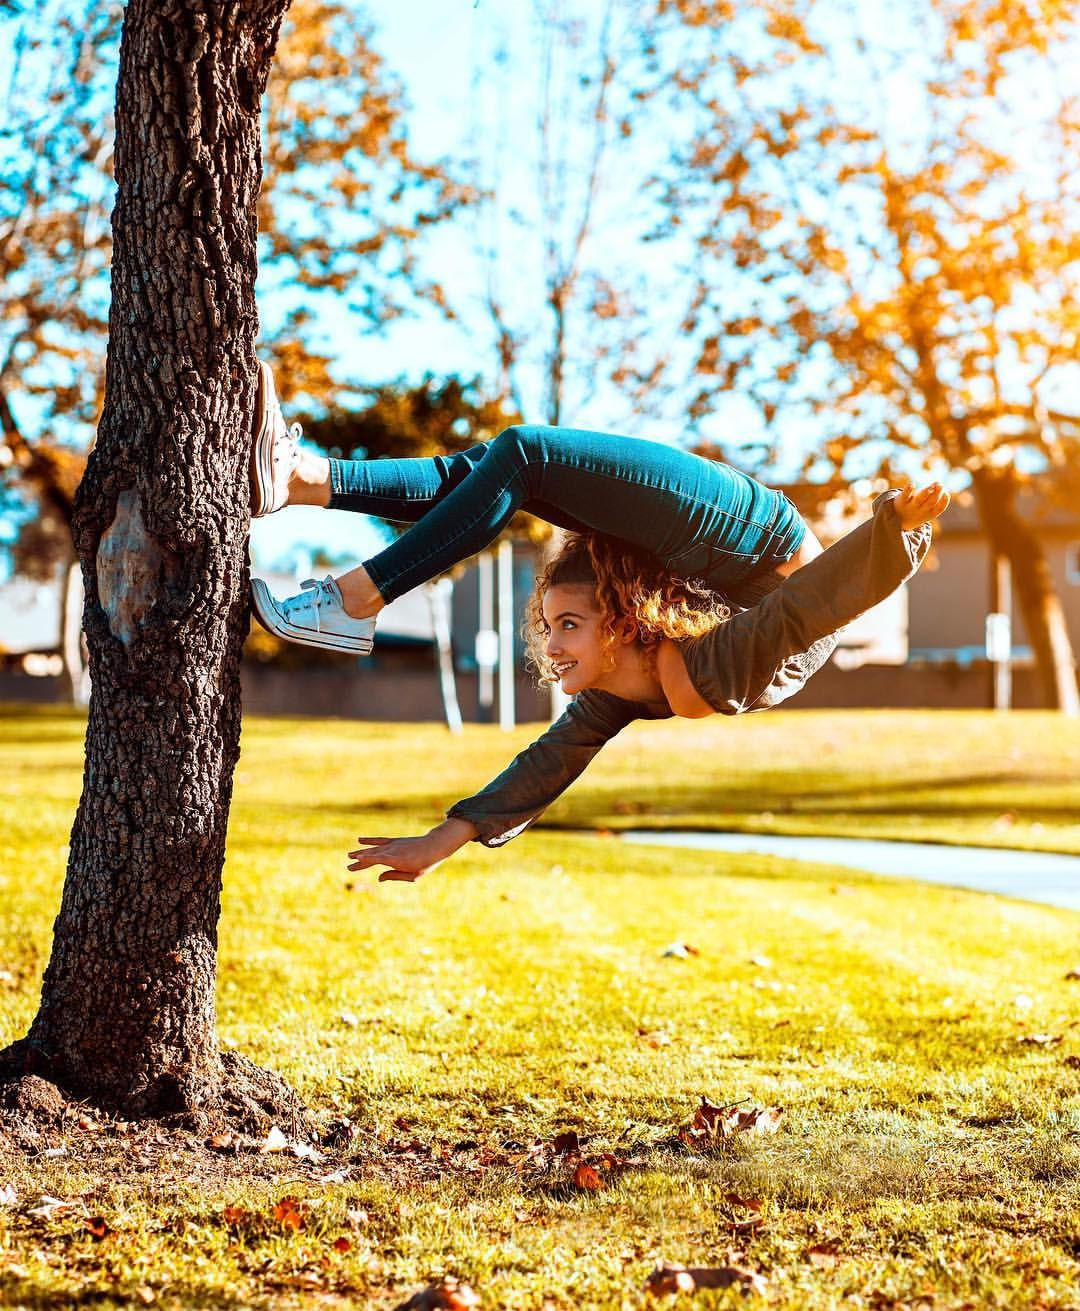 479 5k Likes 10 6k Comments Sofie Dossi Sofiedossi On Instagram Which Way Is Up Dance Photography Poses Gymnastics Poses Flexibility Dance